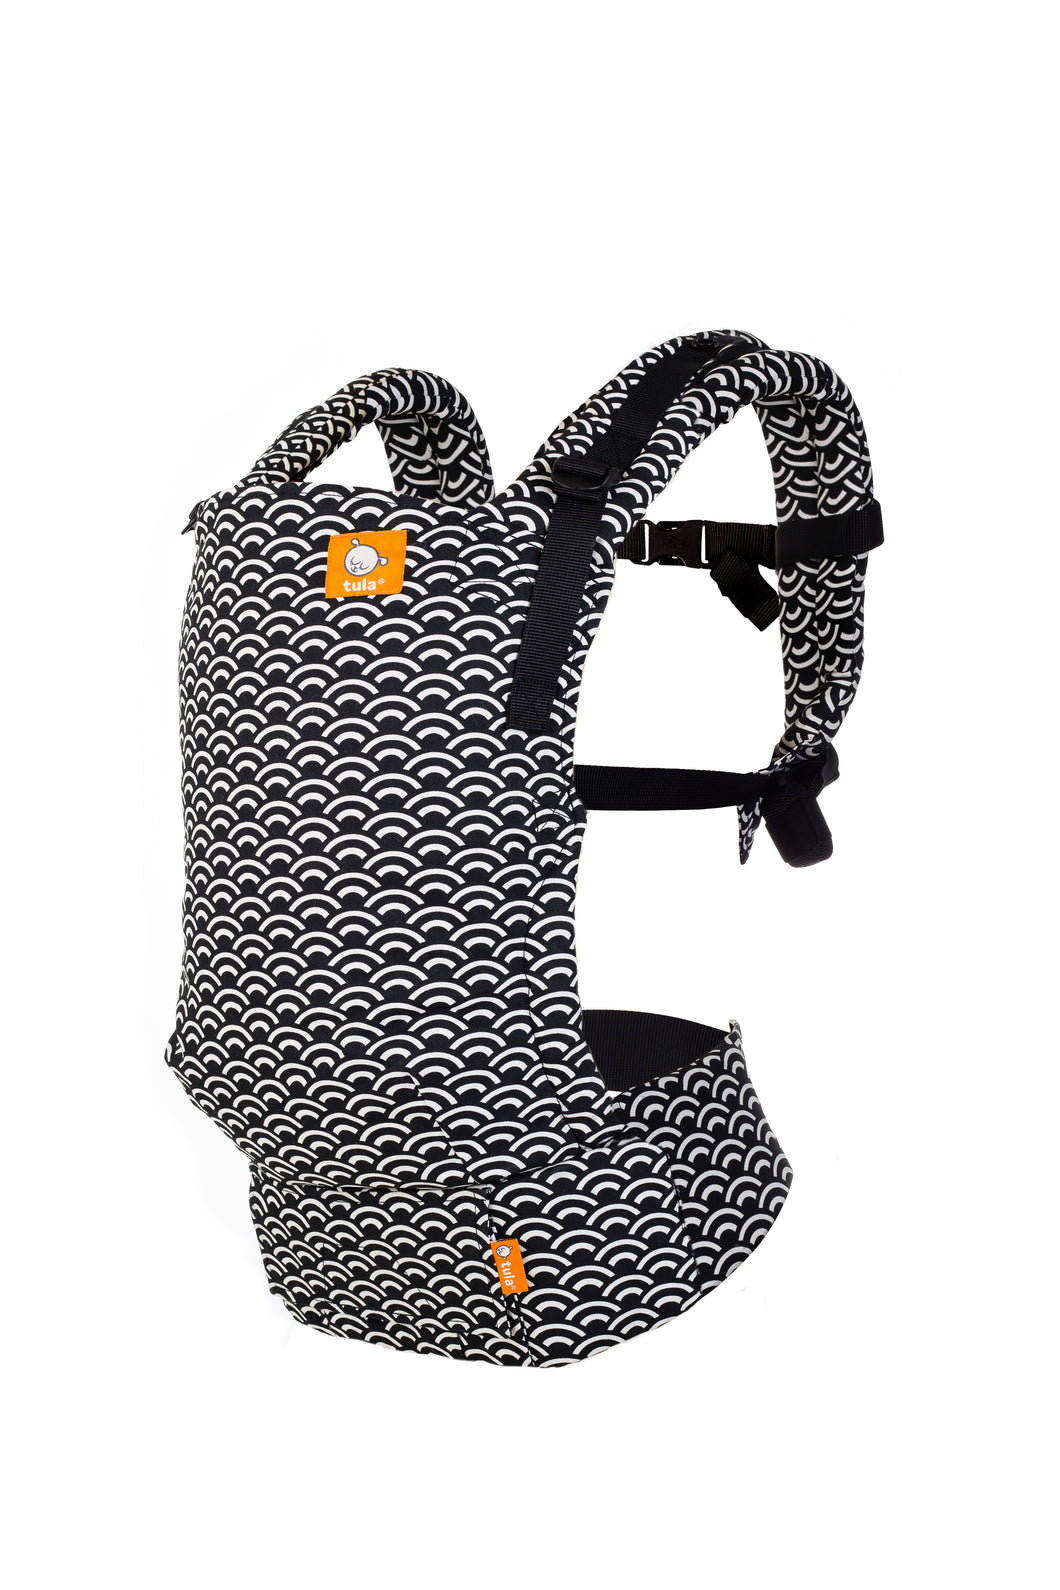 Tempo - Tula Free-to-Grow Baby Carrier